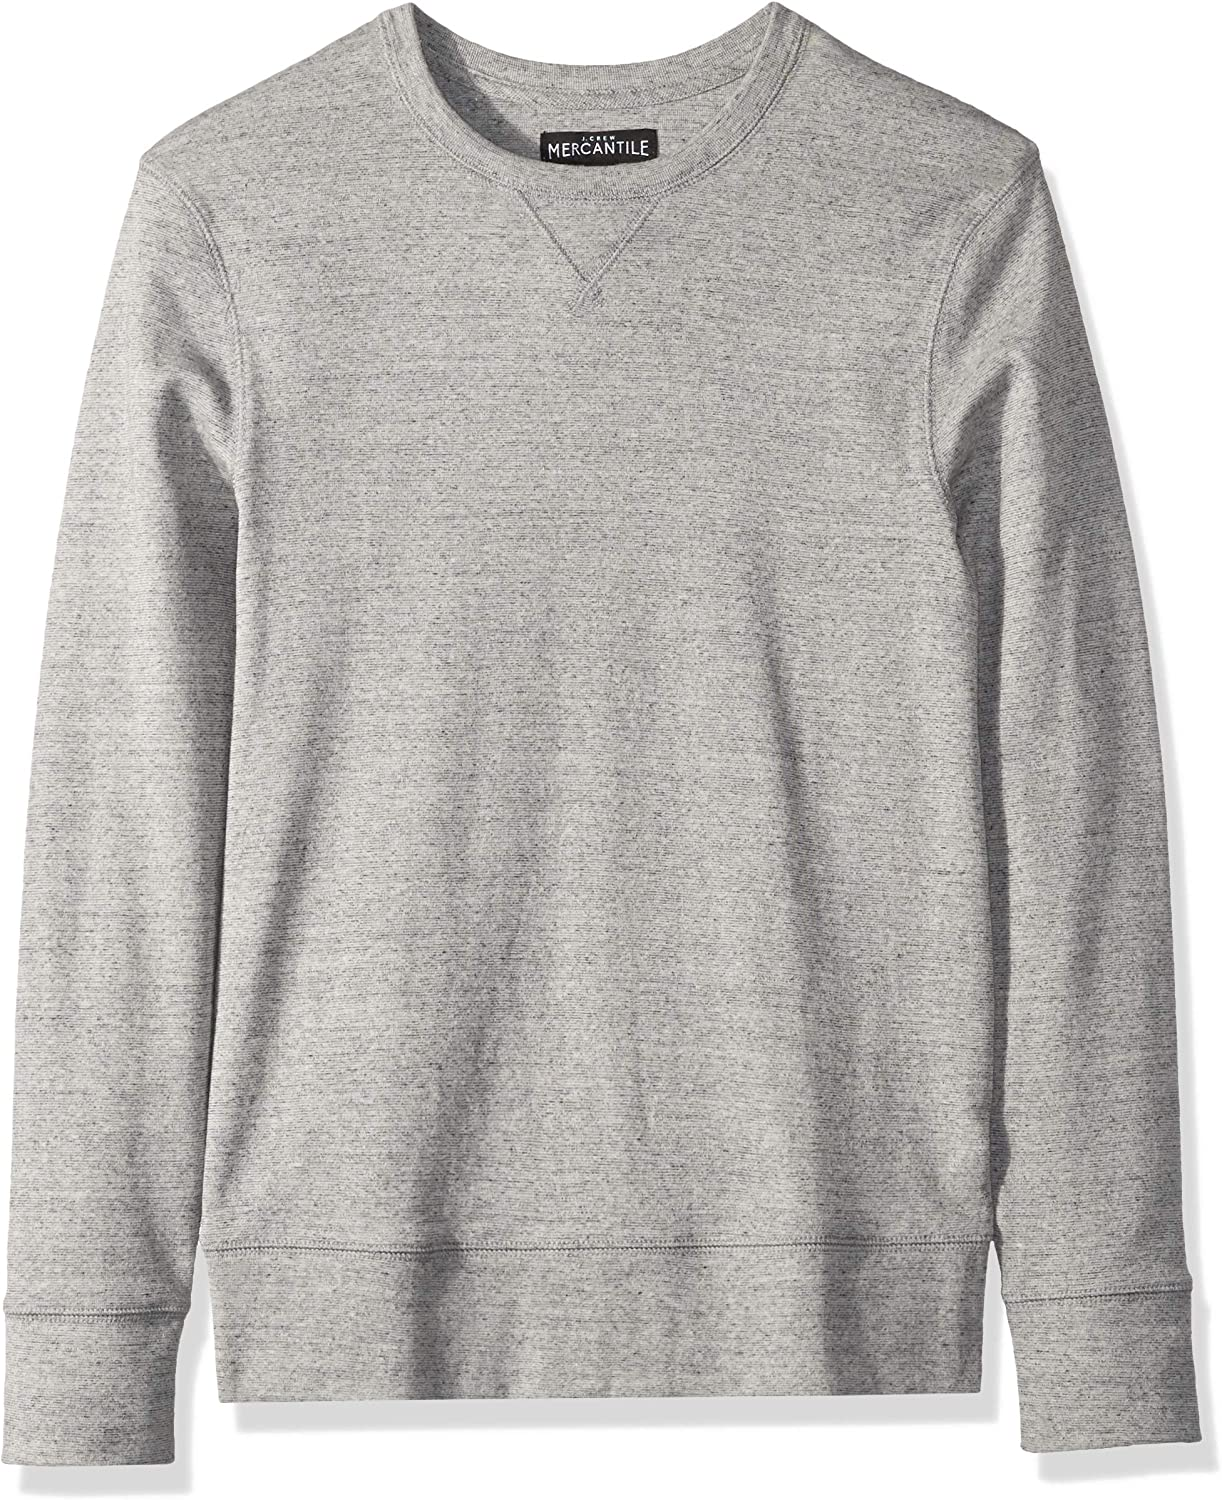 J.Crew Mercantile Mens Long-Sleeve Twisted Rib Crewneck T-Shirt